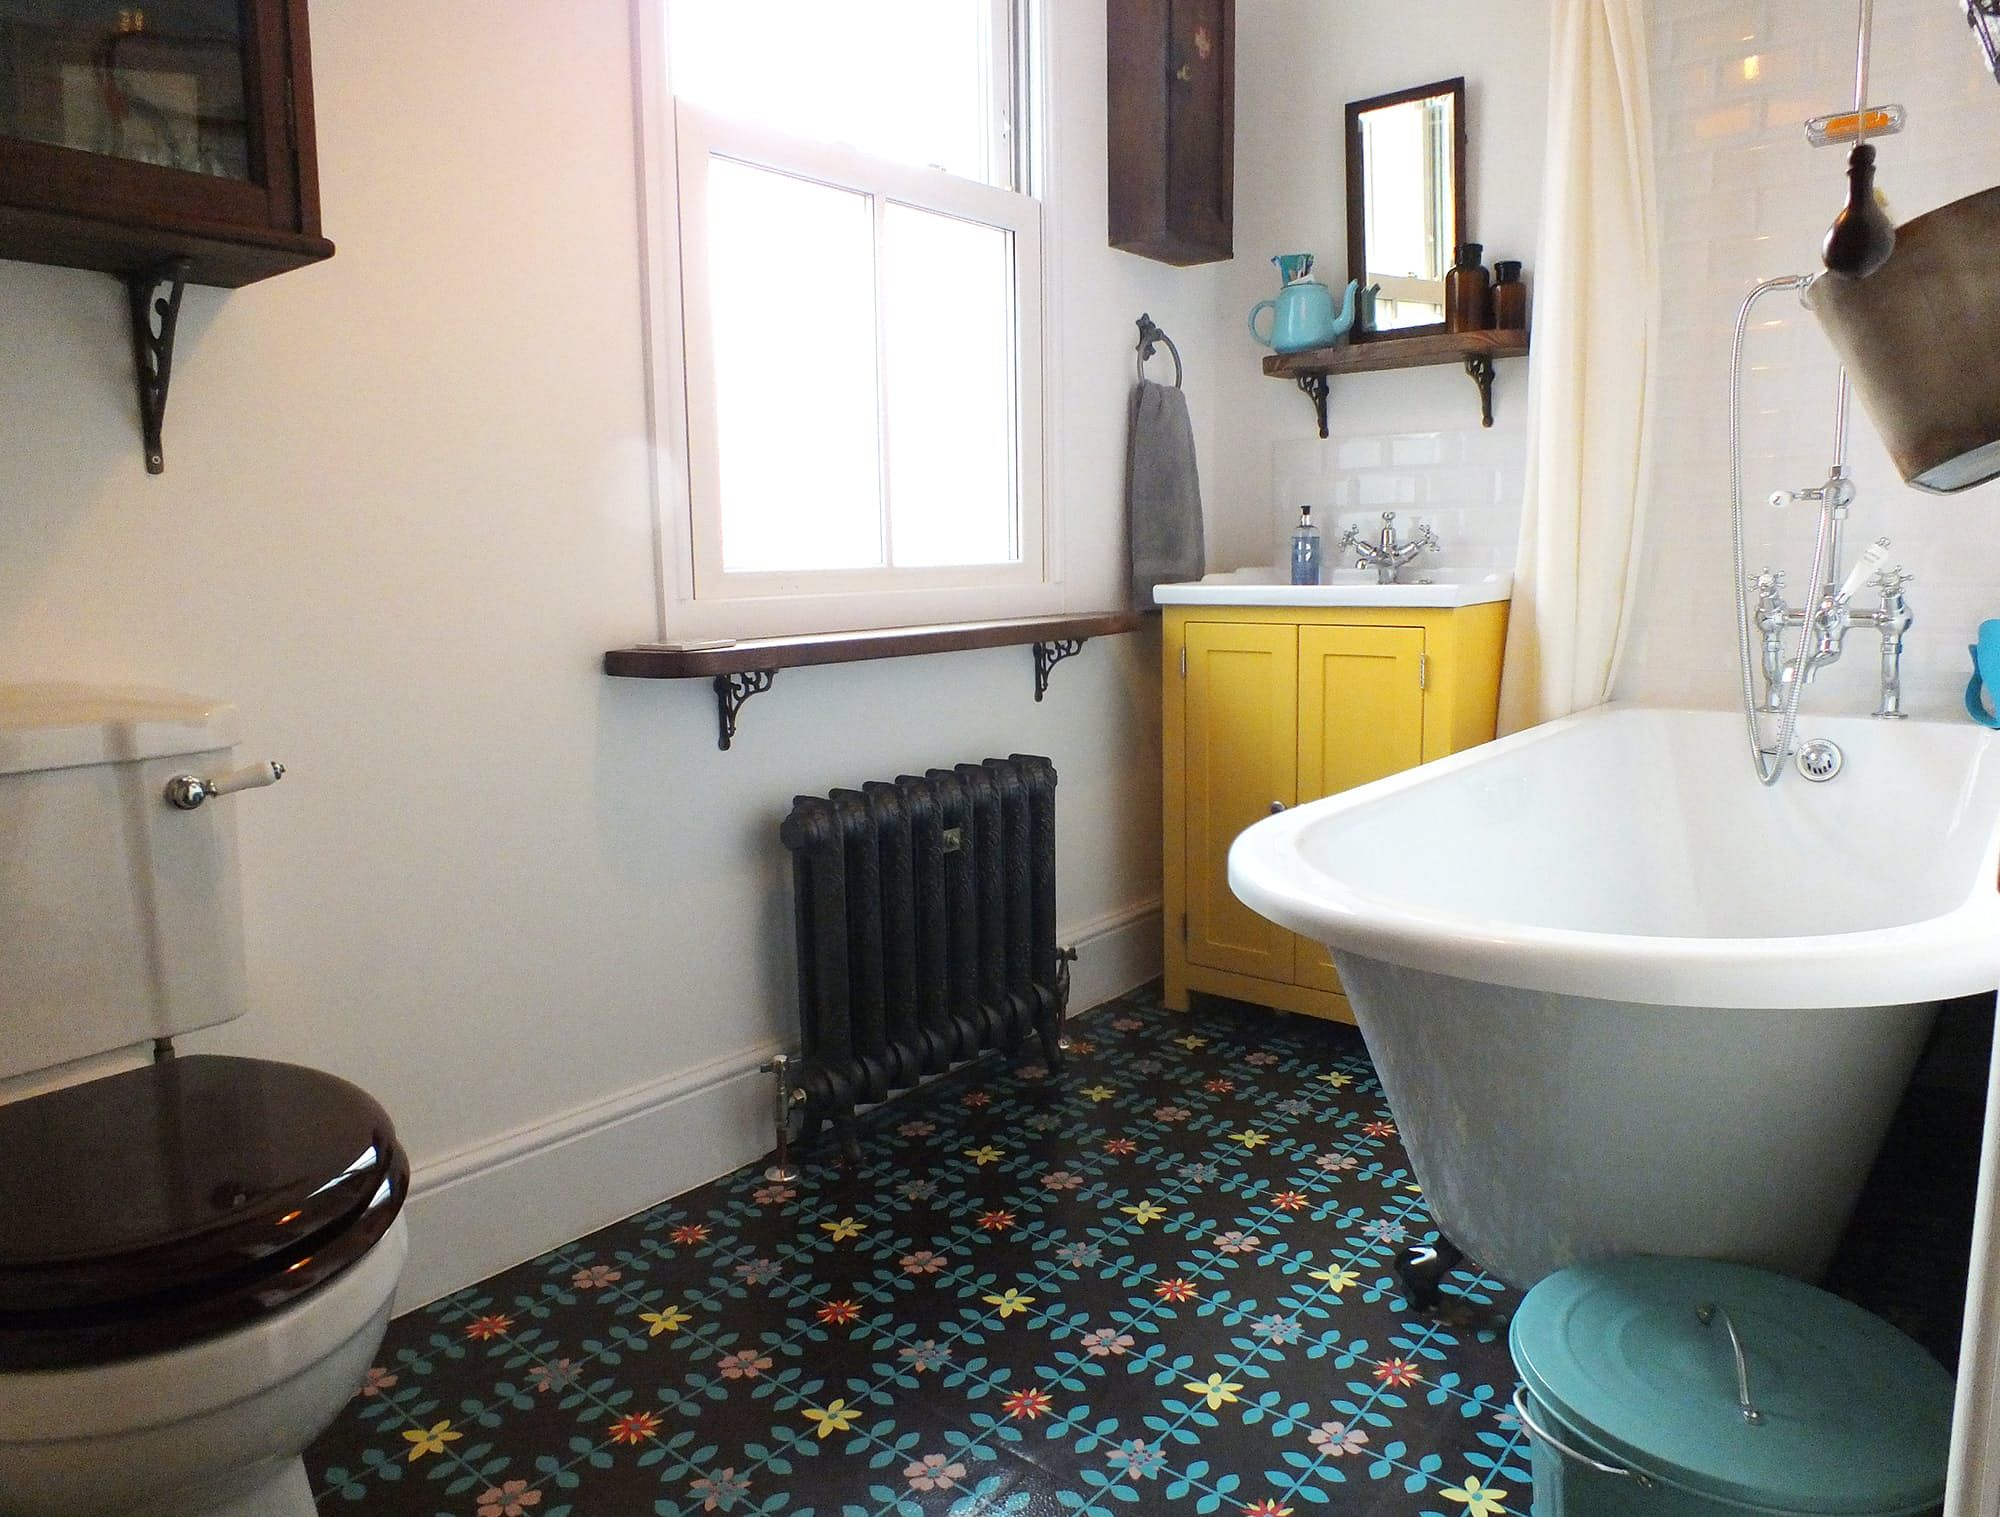 A British Bathroom Makeover An Old Victorian Gets a New